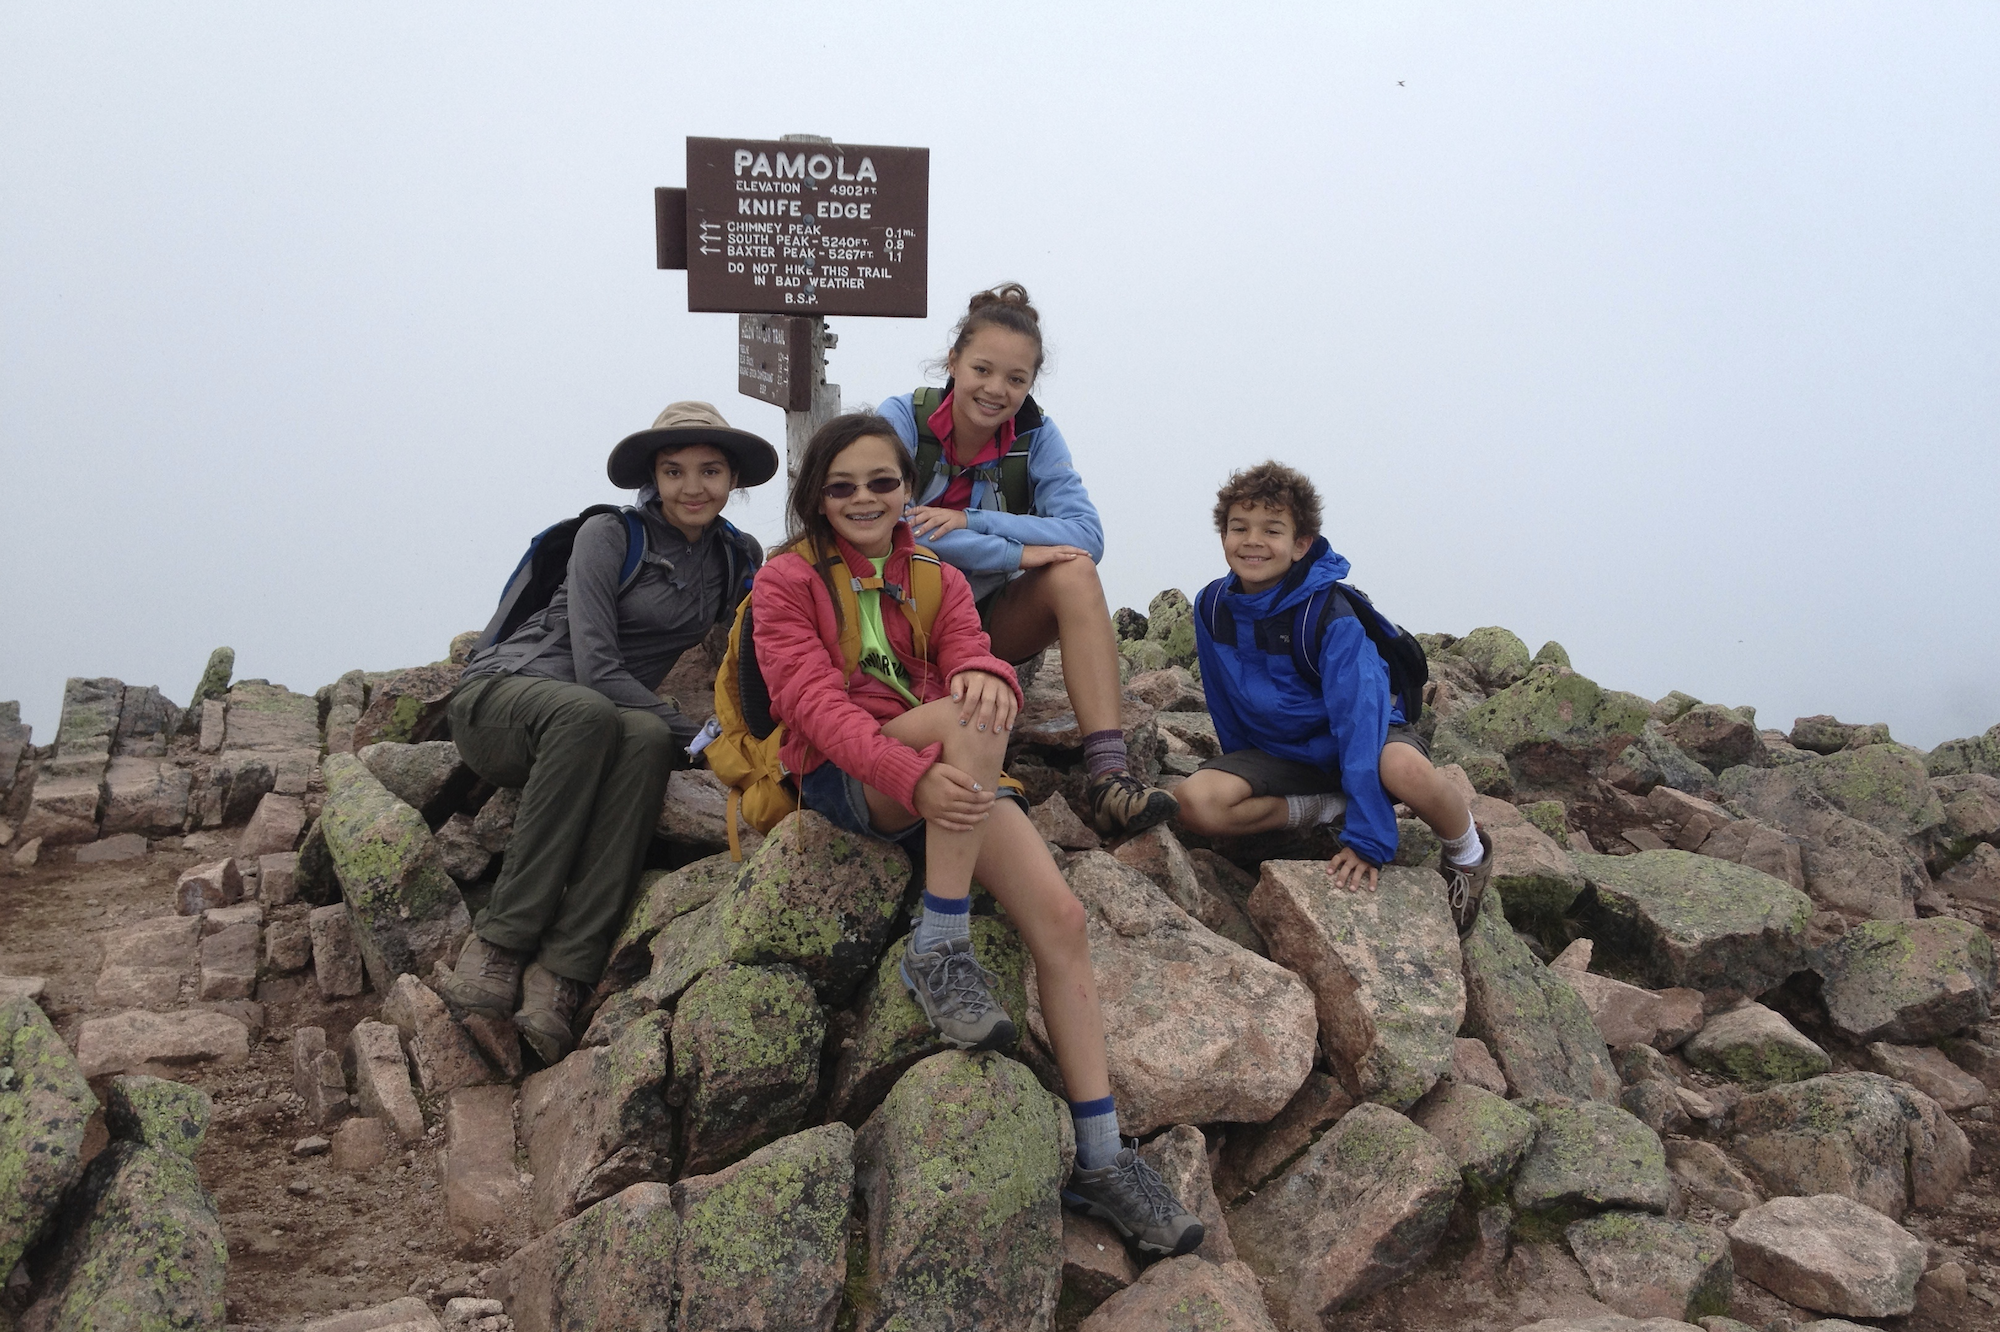 Siena (far left) at the Summit of Mt. Katahdin with cousins (center two) and little brother (far right)